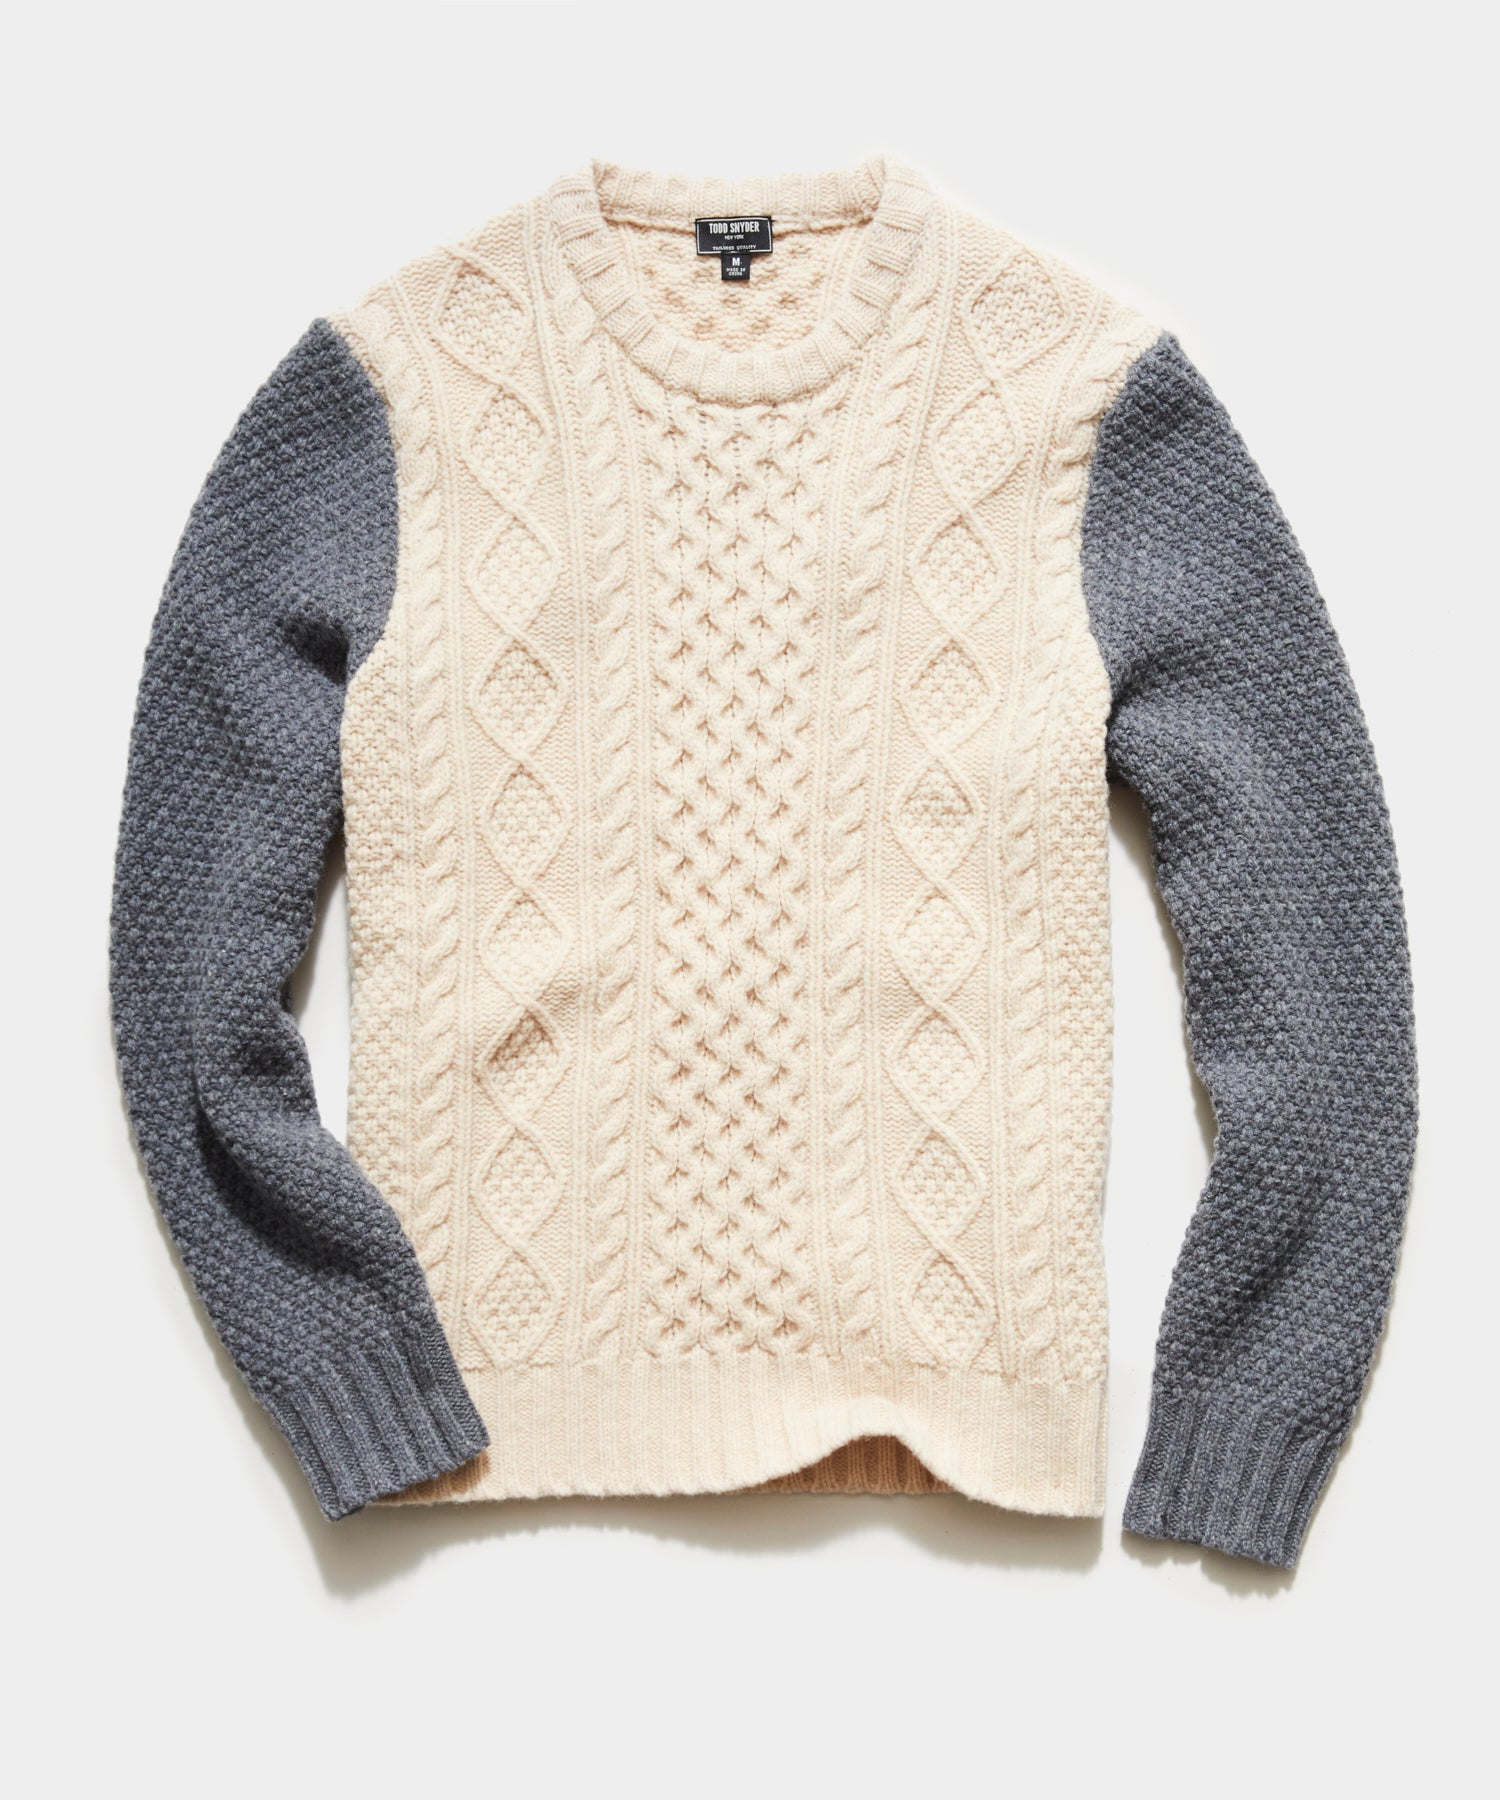 Todd Snyder Fisherman's Sweater